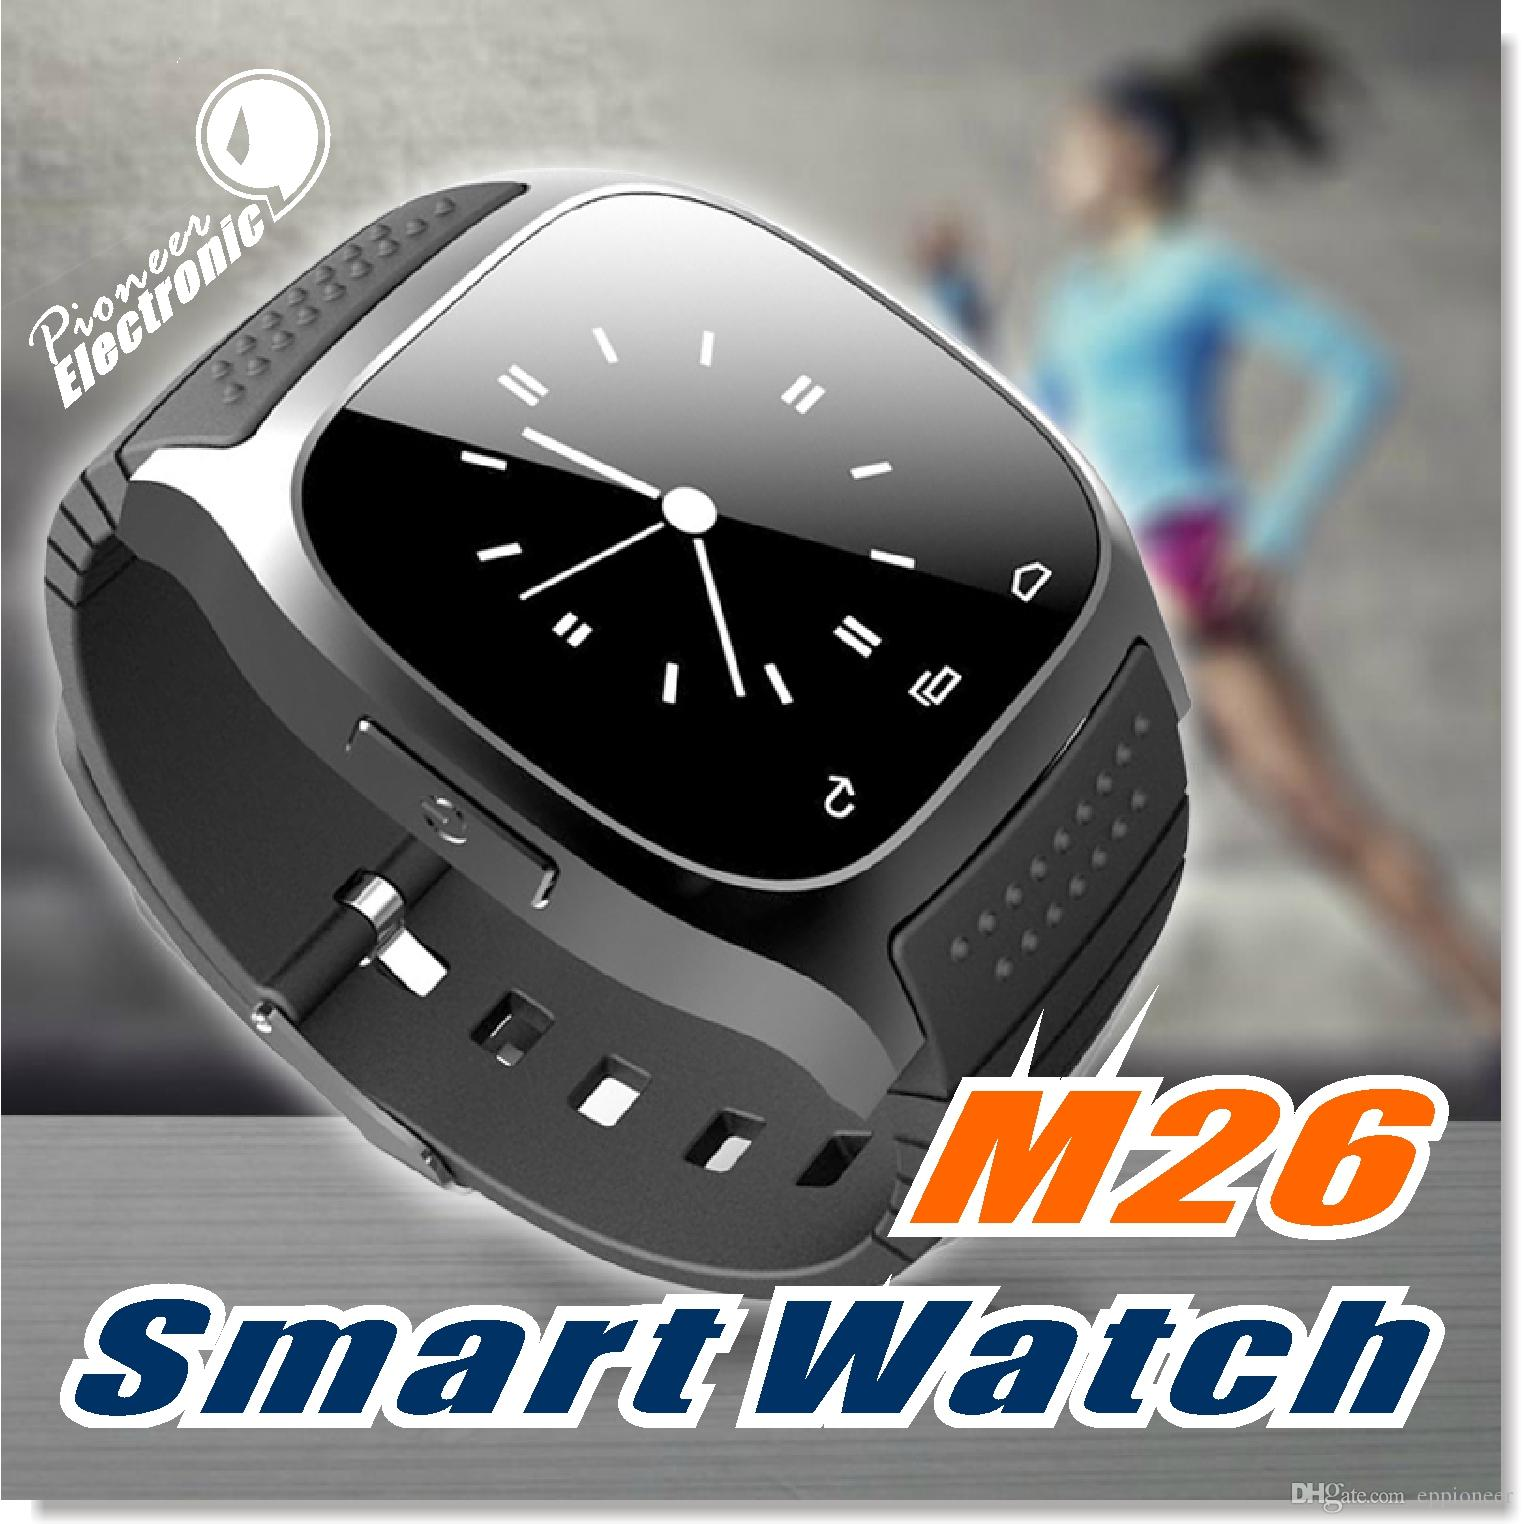 M26 Smartwatch Wirelss Bluetooth Smart Watch Phone Bracelet Camera Remote Control Anti lost Alarm Barometer V8 A1 U8 Watch for IOS Android M26 Smartwatch